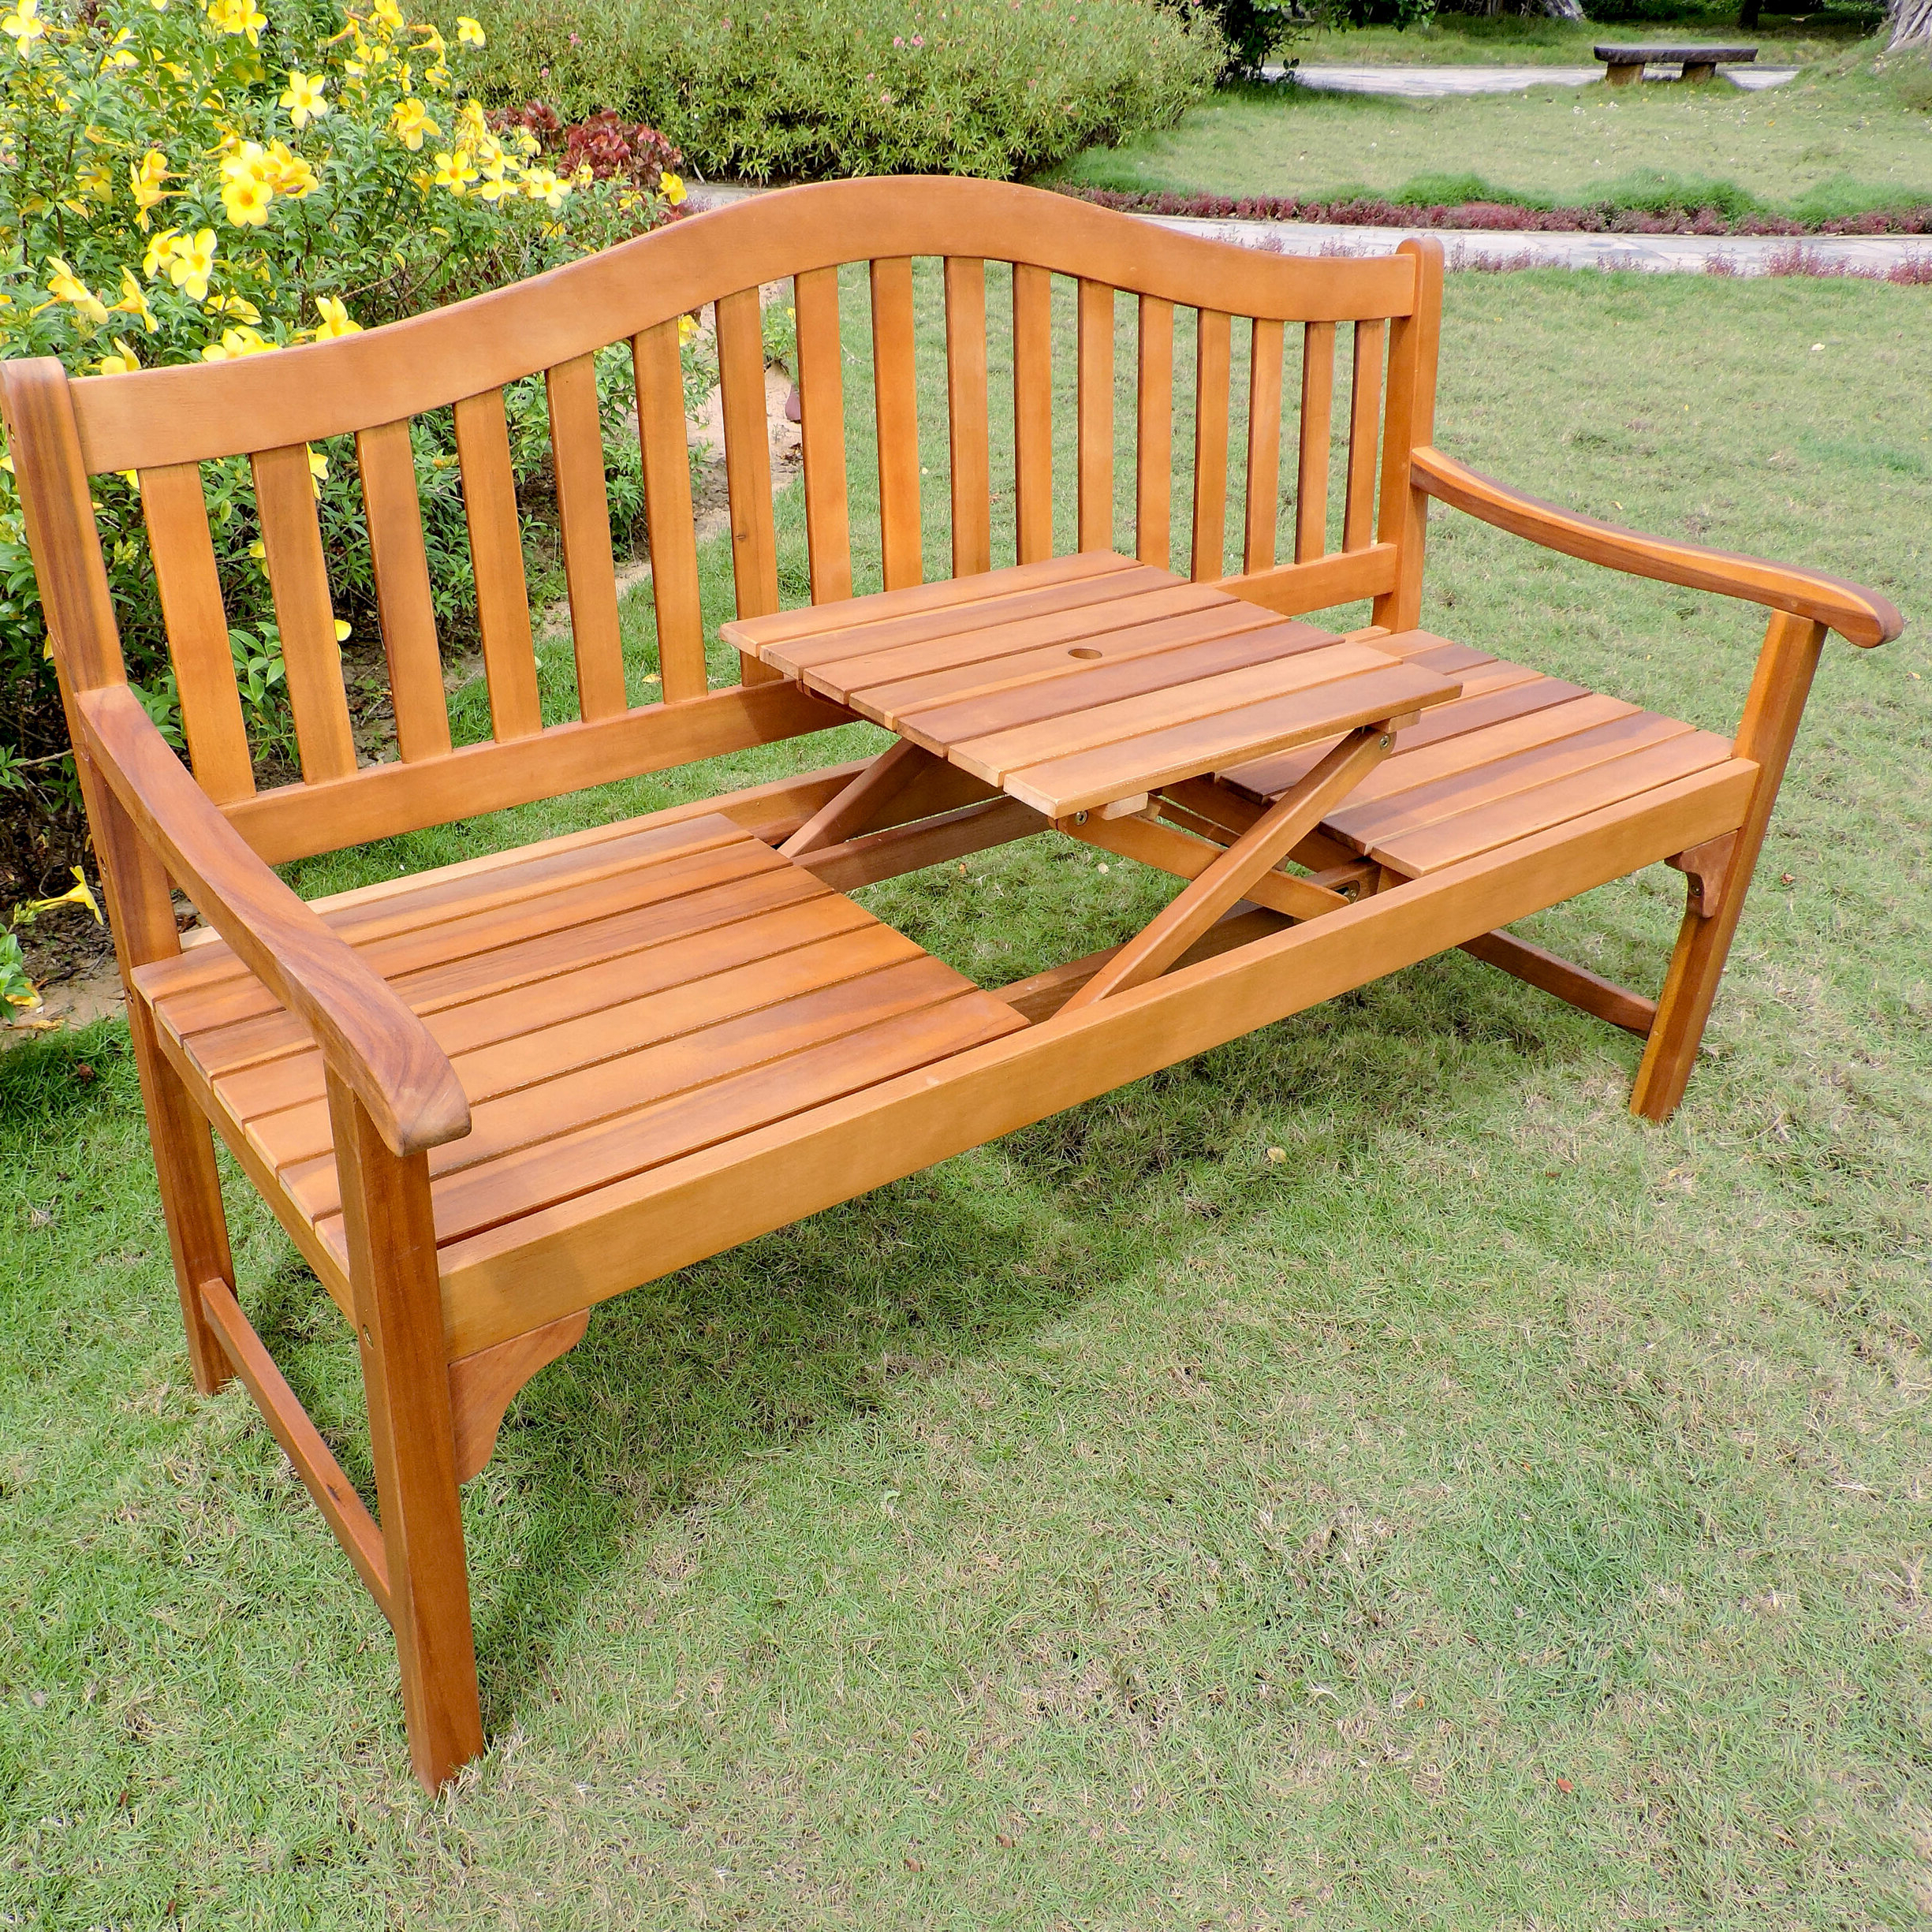 Manchester Wooden Garden Benches Intended For Well Known Leone Wooden Garden Bench (View 10 of 30)